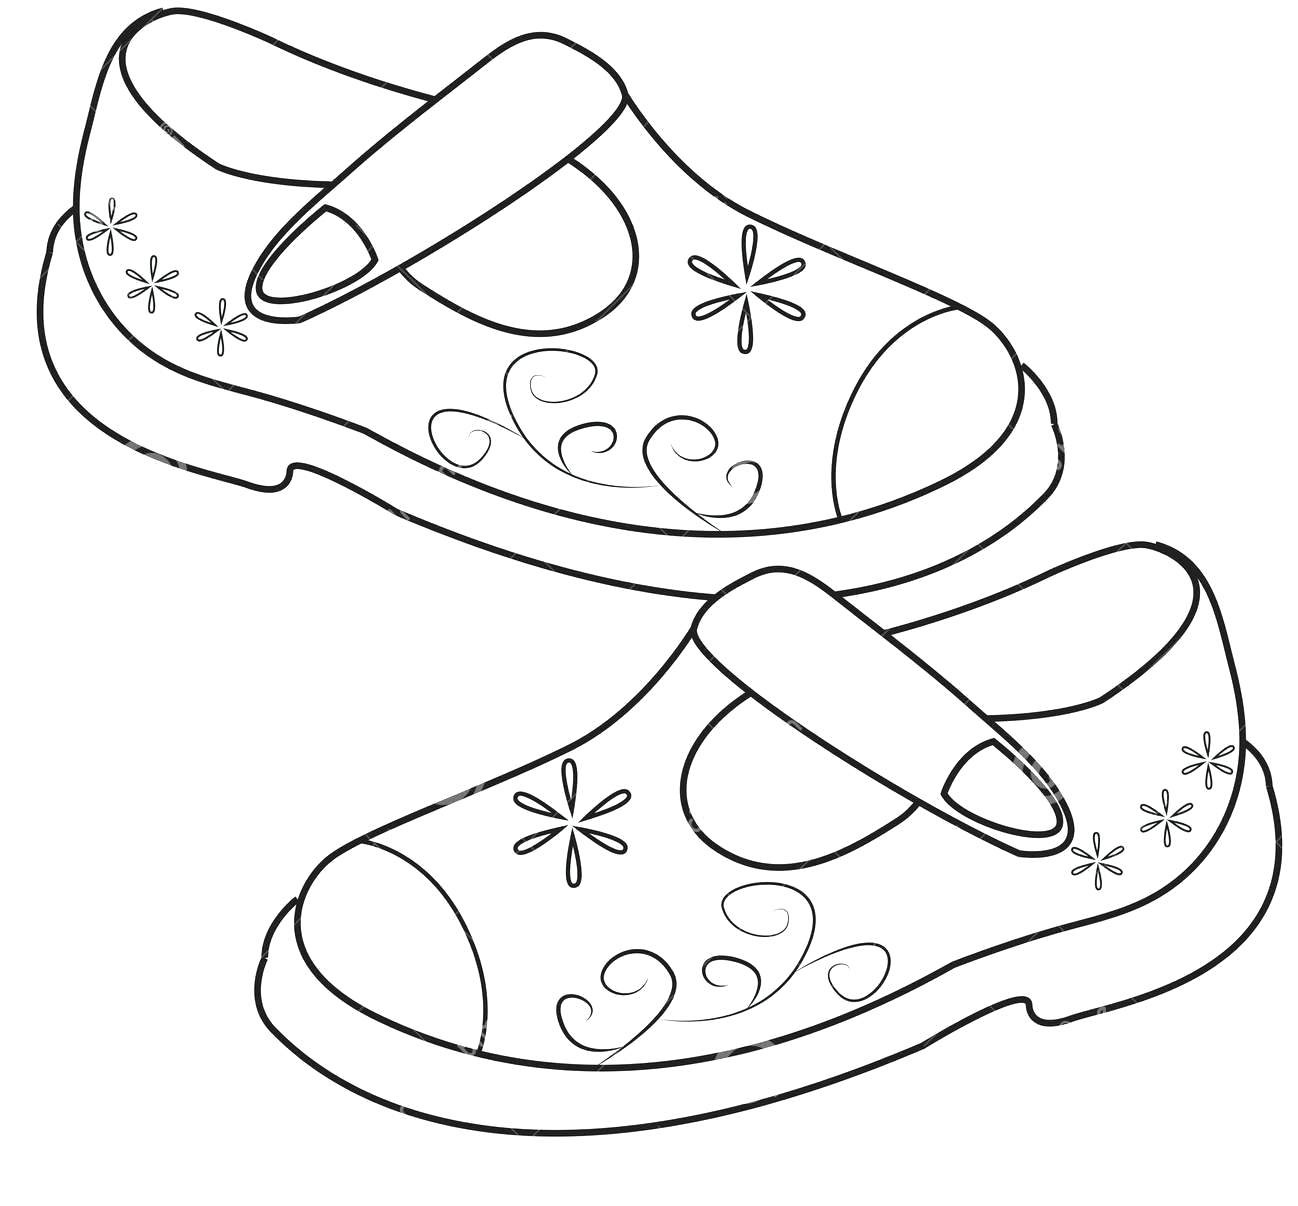 shoes for coloring basketball shoe coloring pages download and print for free shoes for coloring